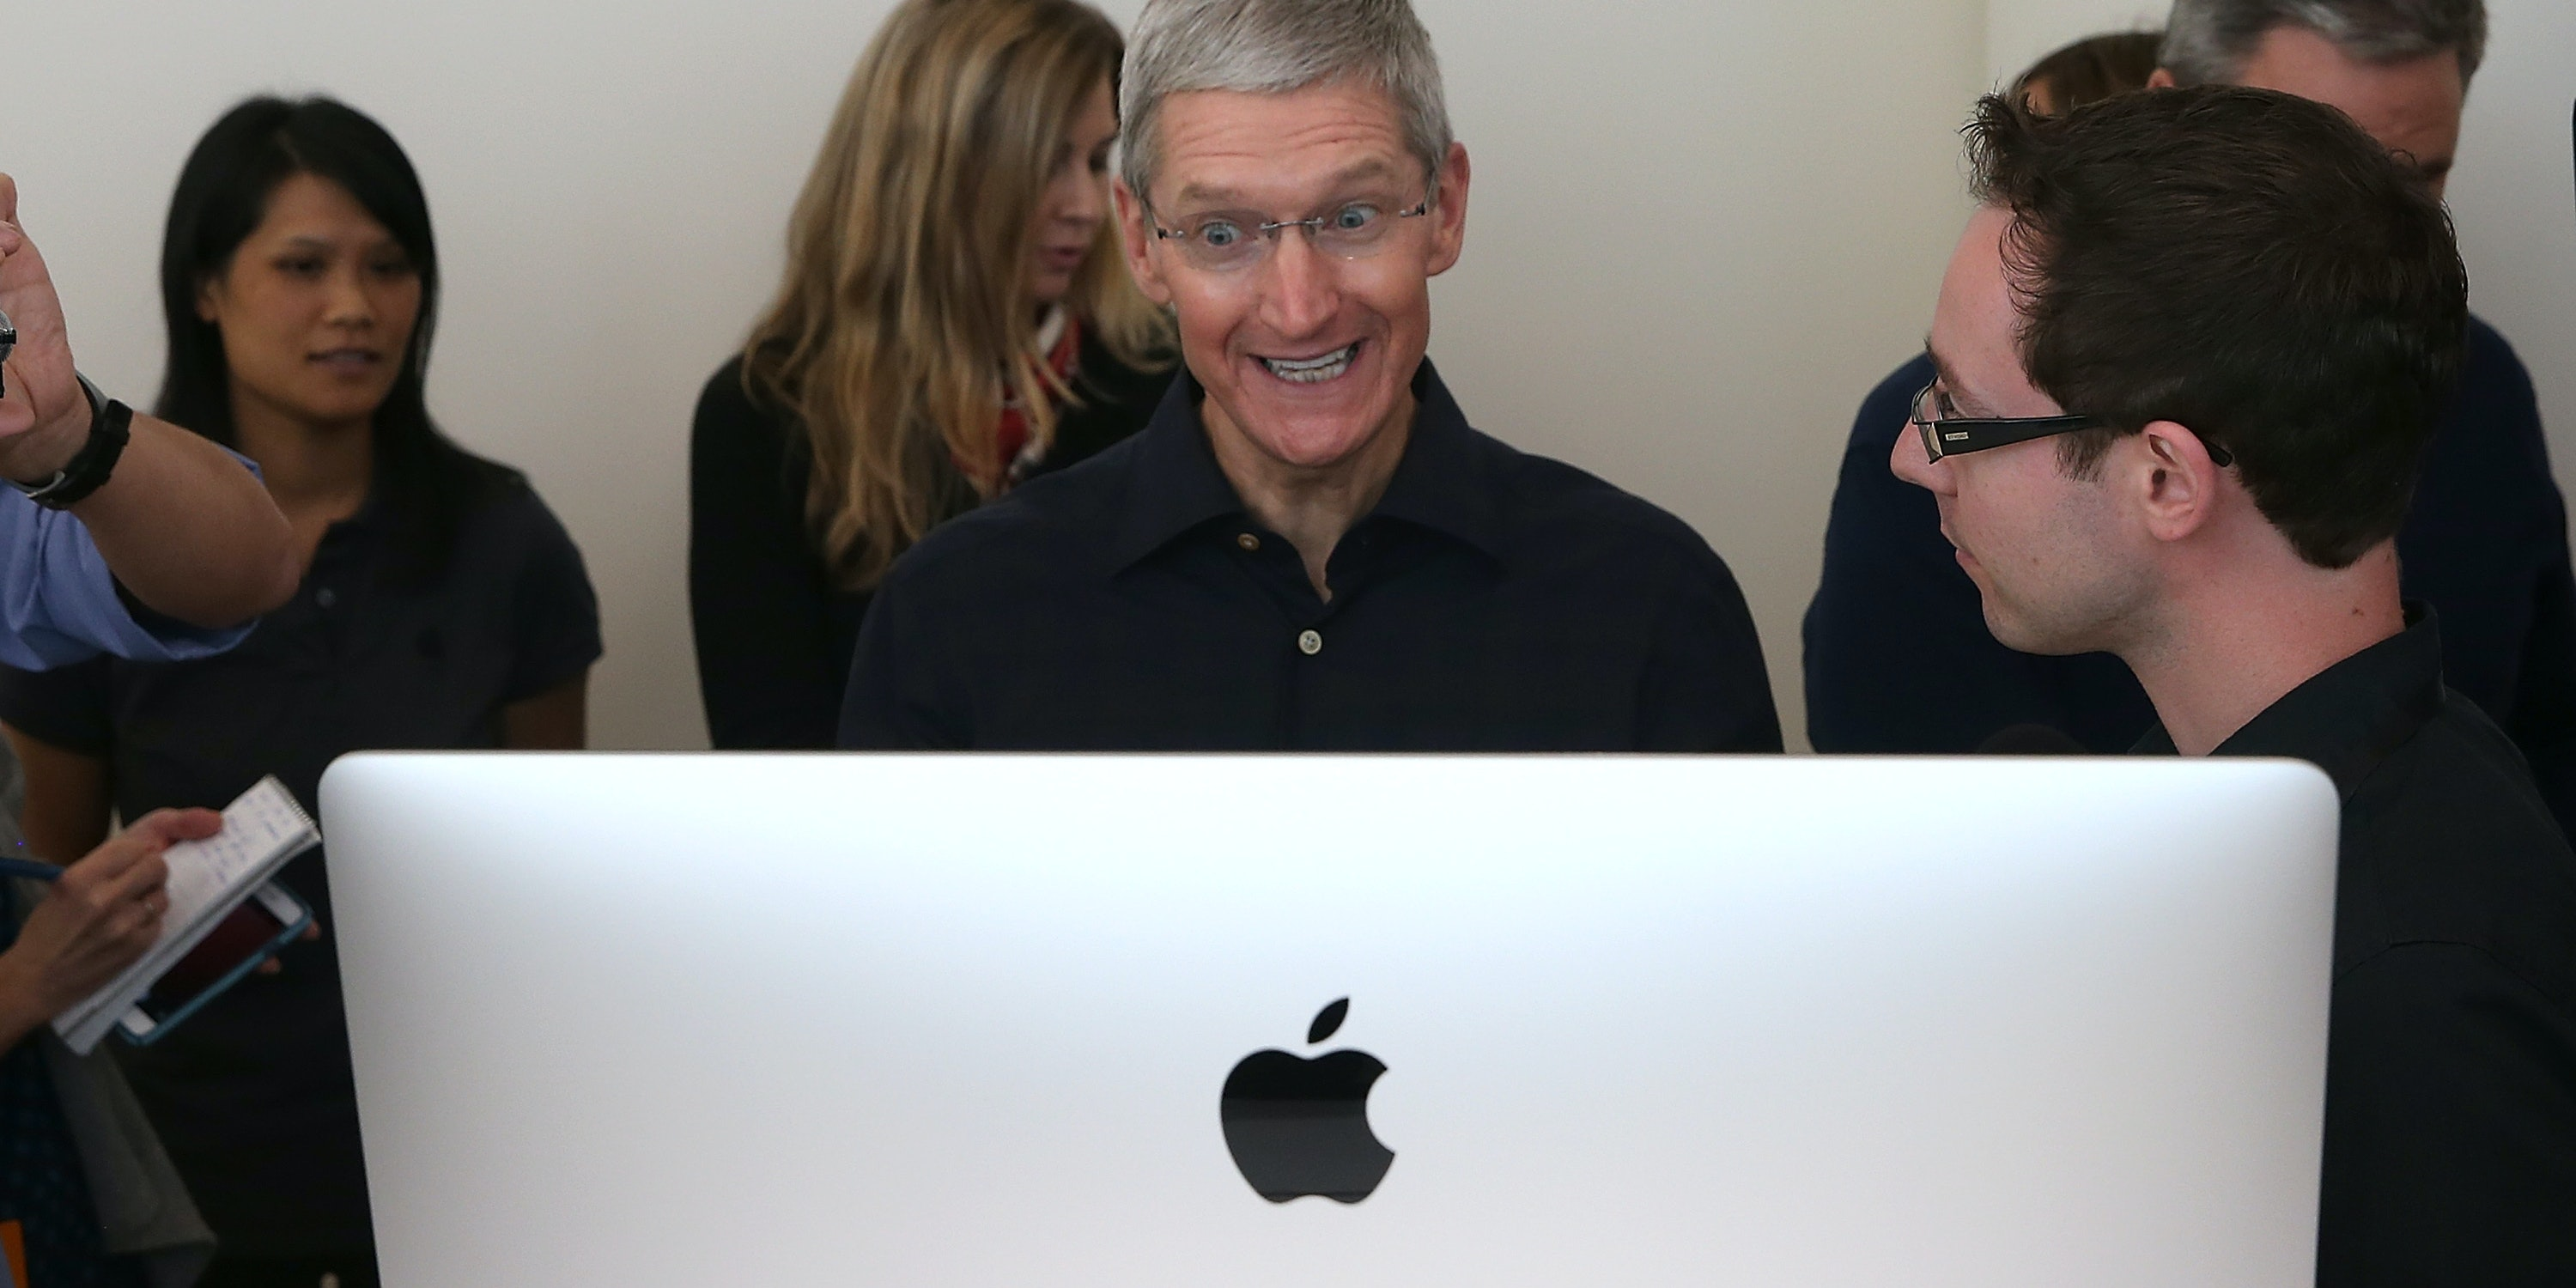 Apple CEO Tim Cook looks at the new 27 inch iMac during an Apple special event on October 16, 2014 in Cupertino, California.